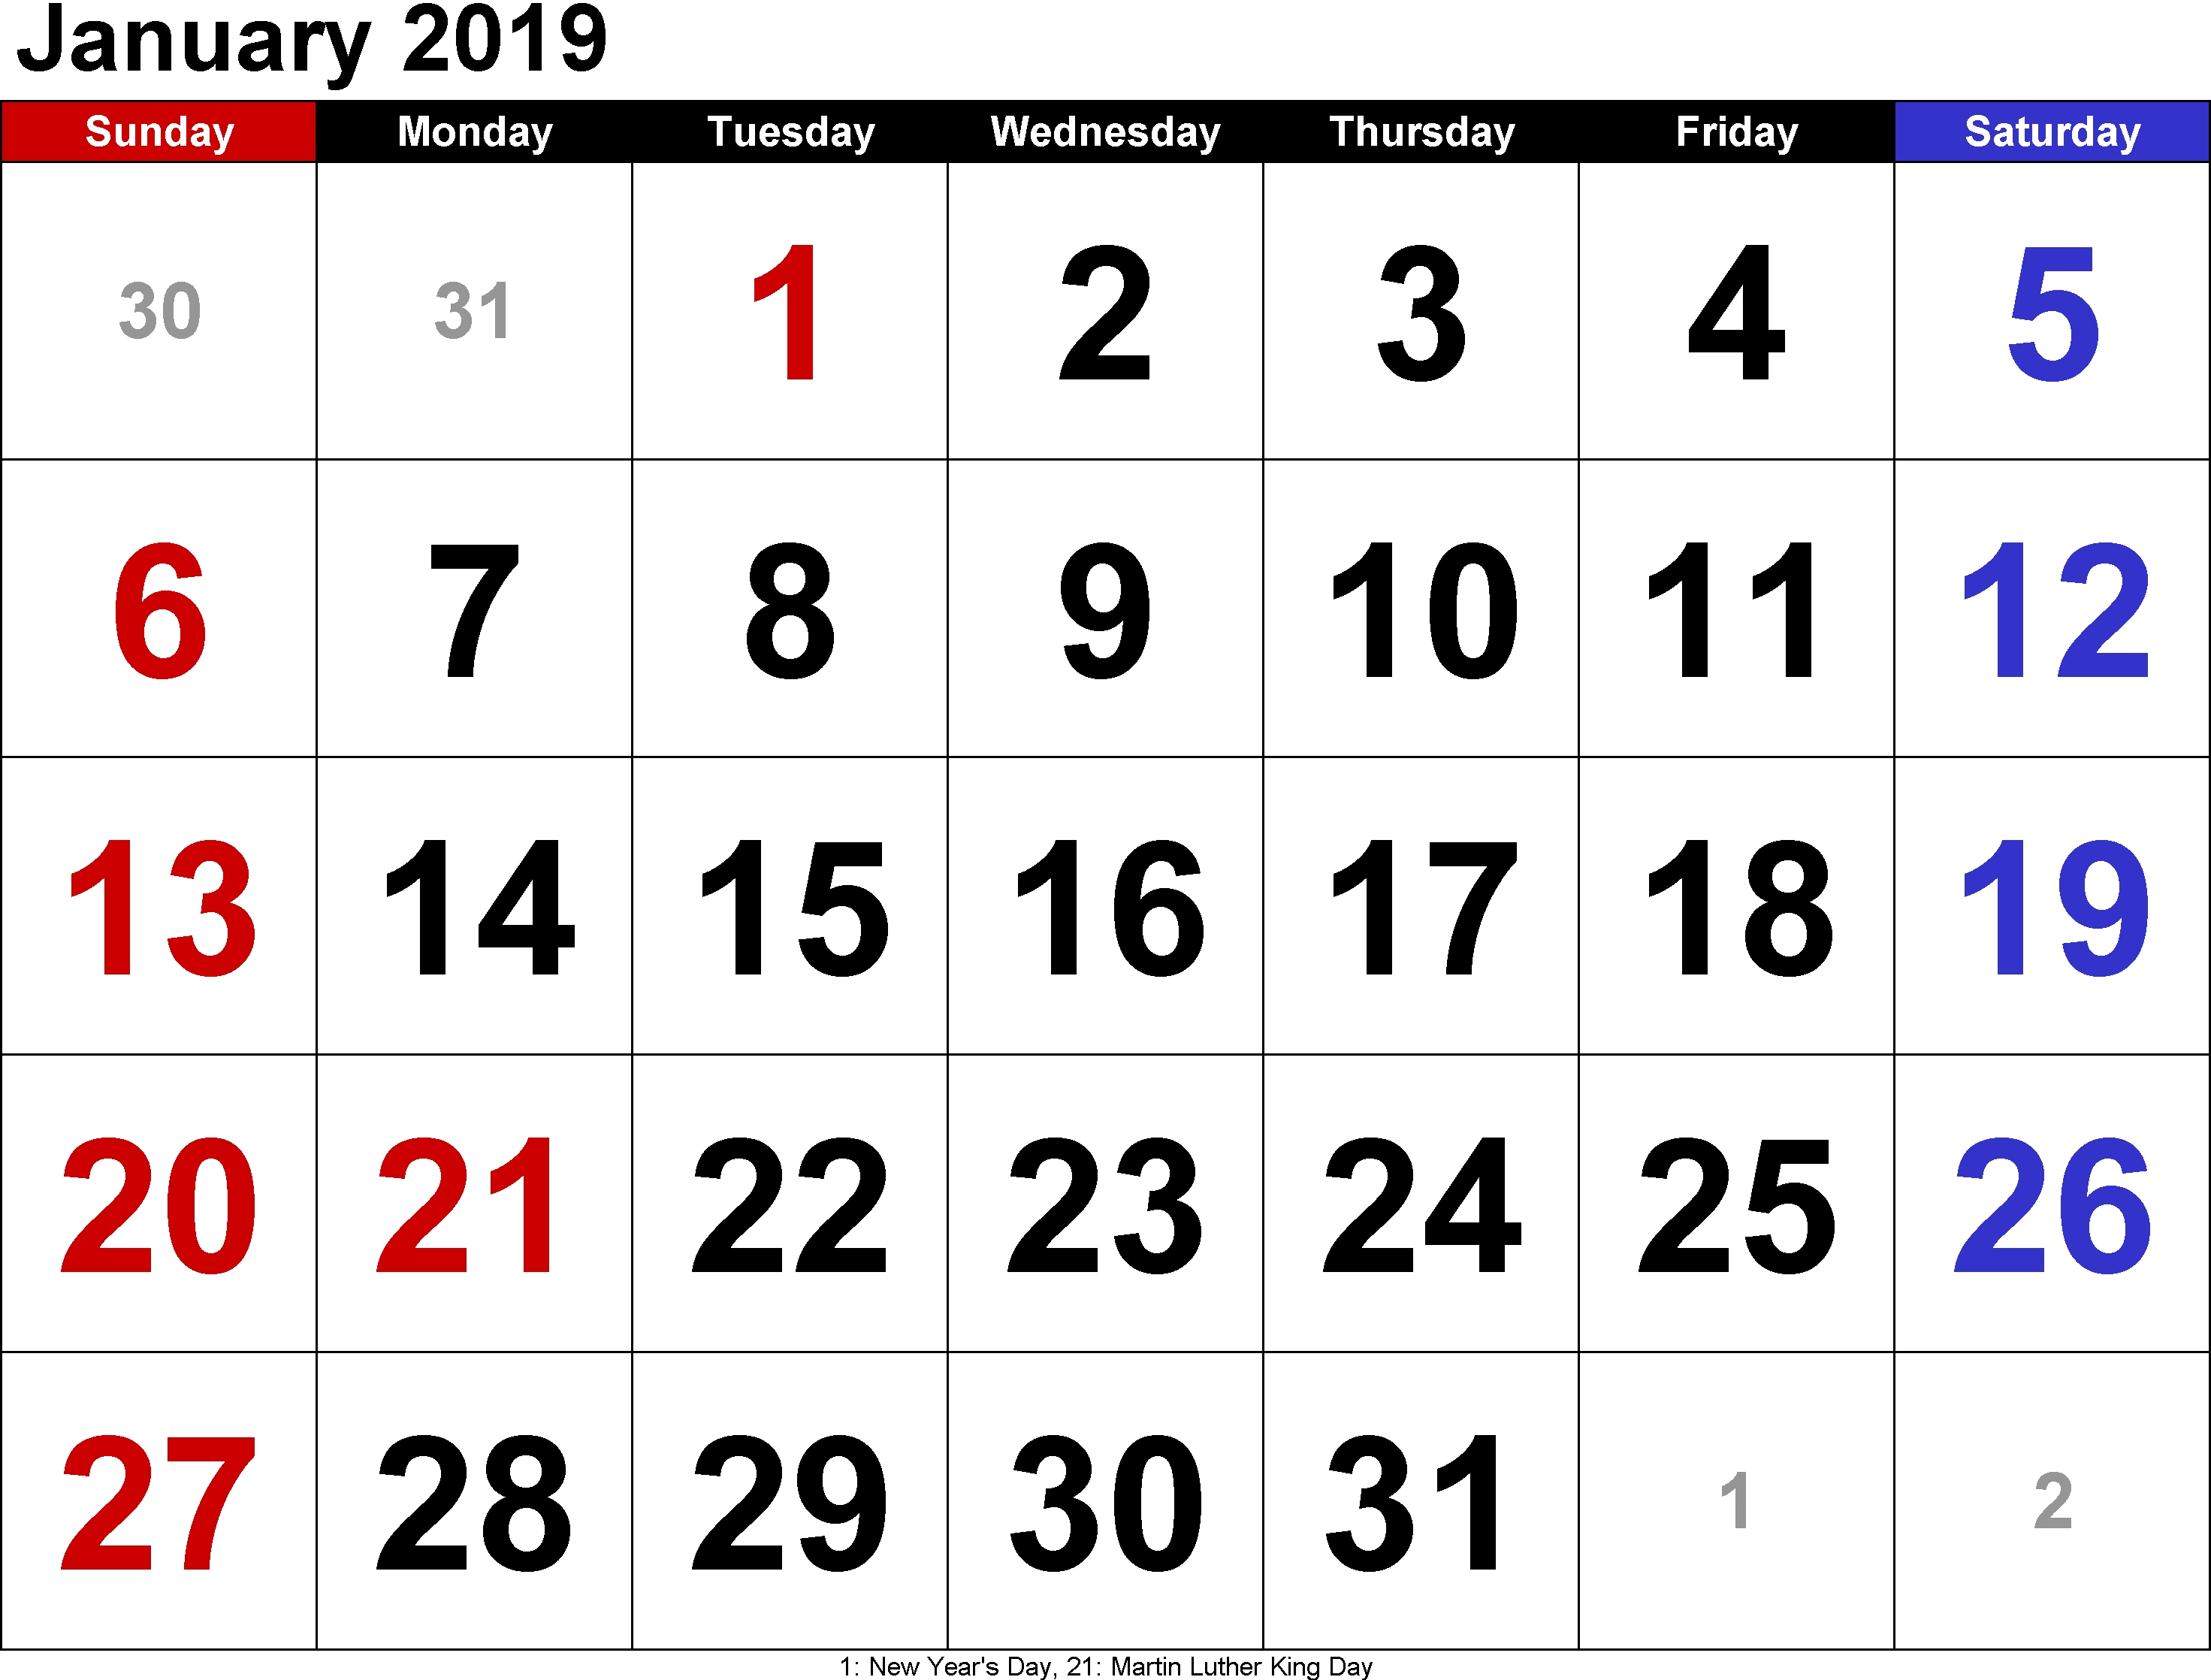 January 2019 Printable Calendar Templates - Free Printable Calendar January 8 2019 Calendar